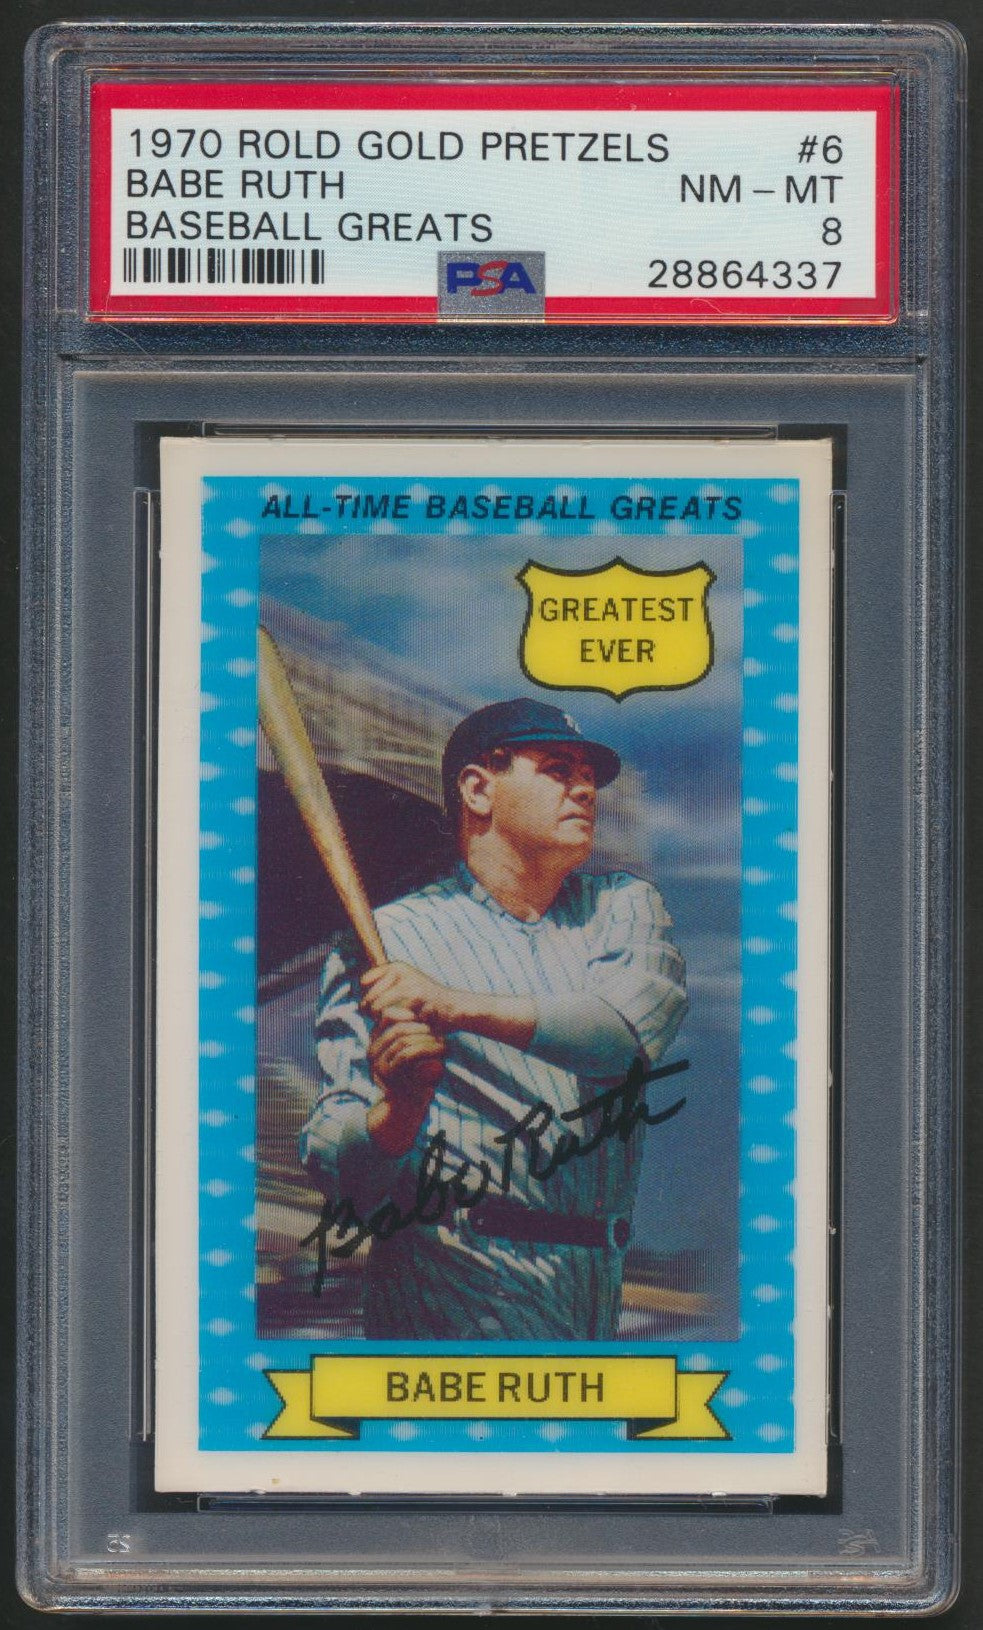 Graded 1970 Rold Gold Pretzels Baseball Card  #6 Babe Ruth - Yankees  PSA 8 NM-MT